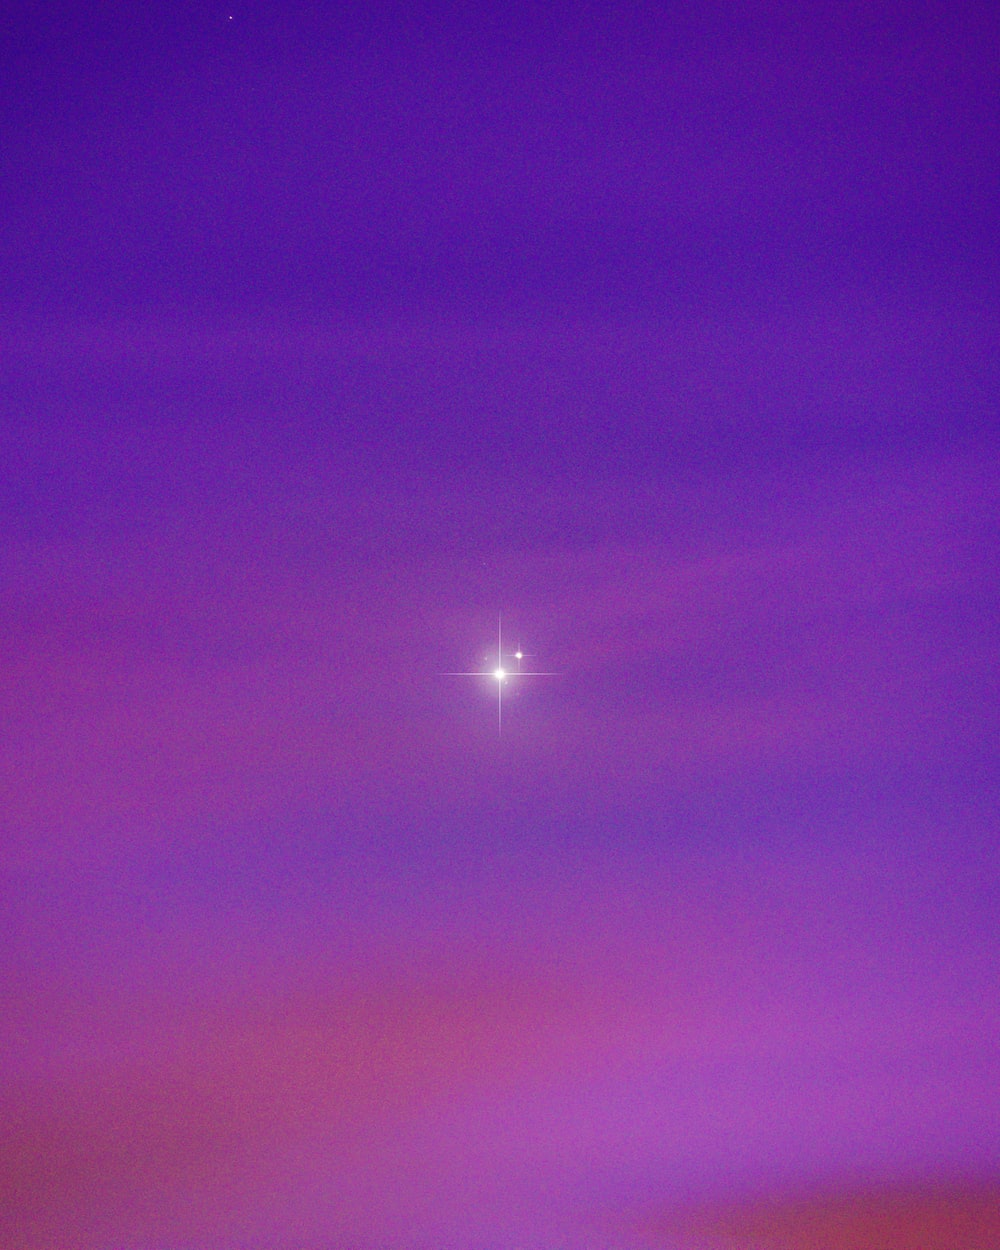 purple and blue sky with stars